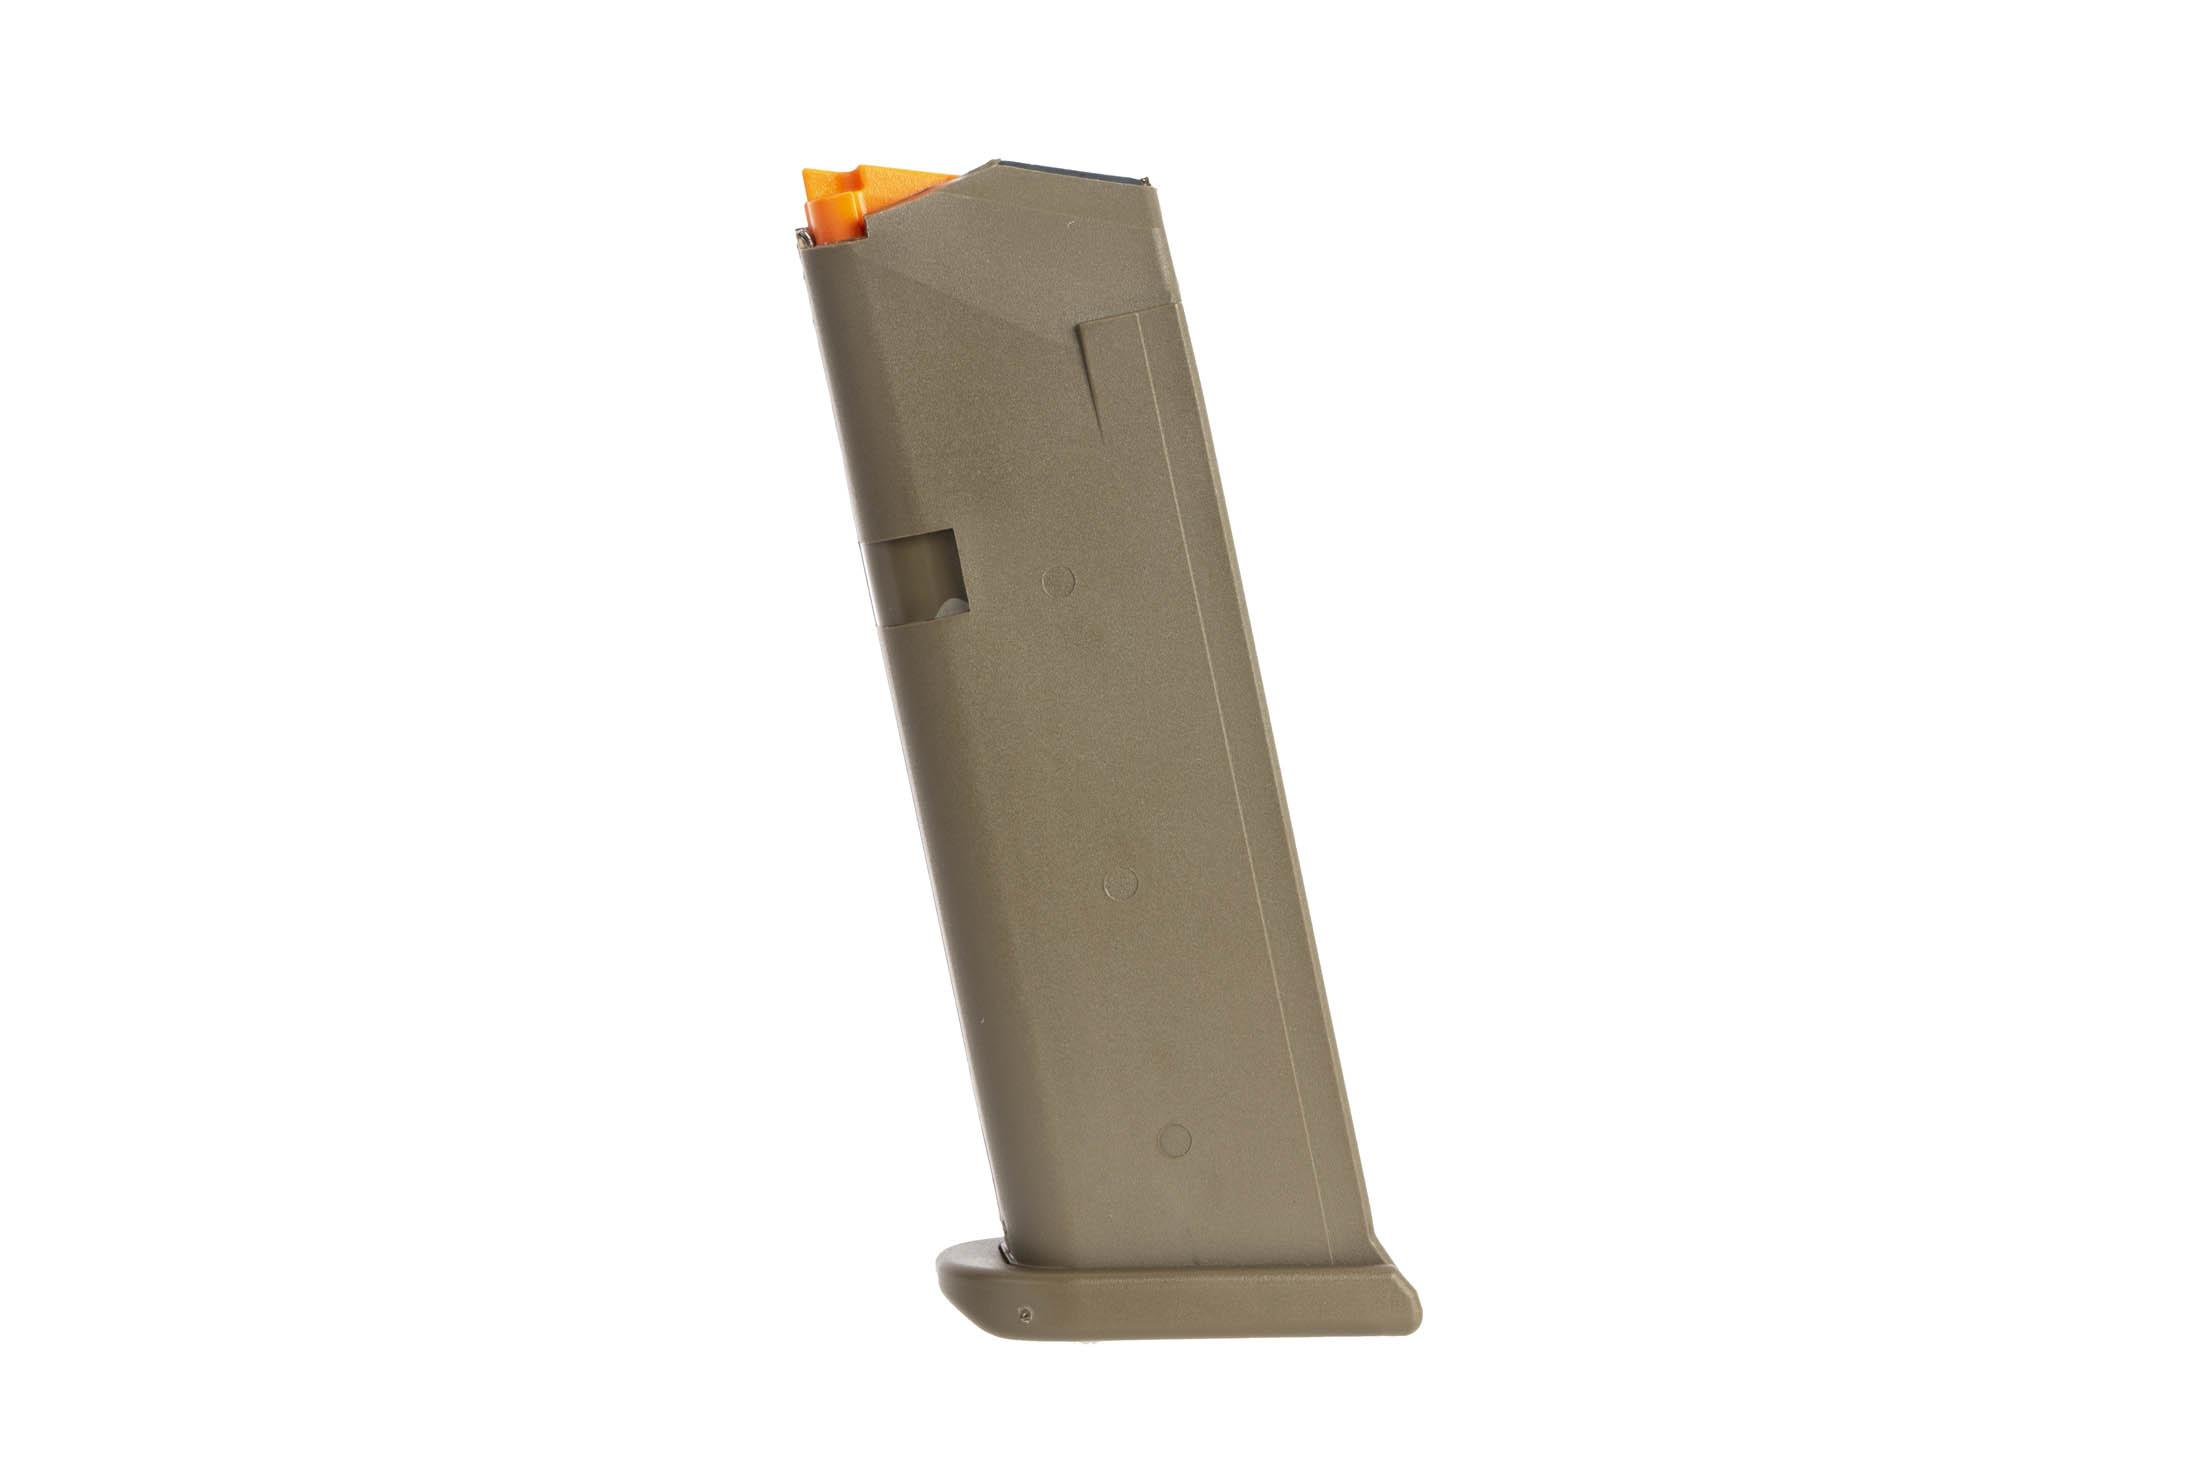 Glock OEM model 19 5th gen hi capacity mags have an olive drab finish and flared base plate for fast magazine changes